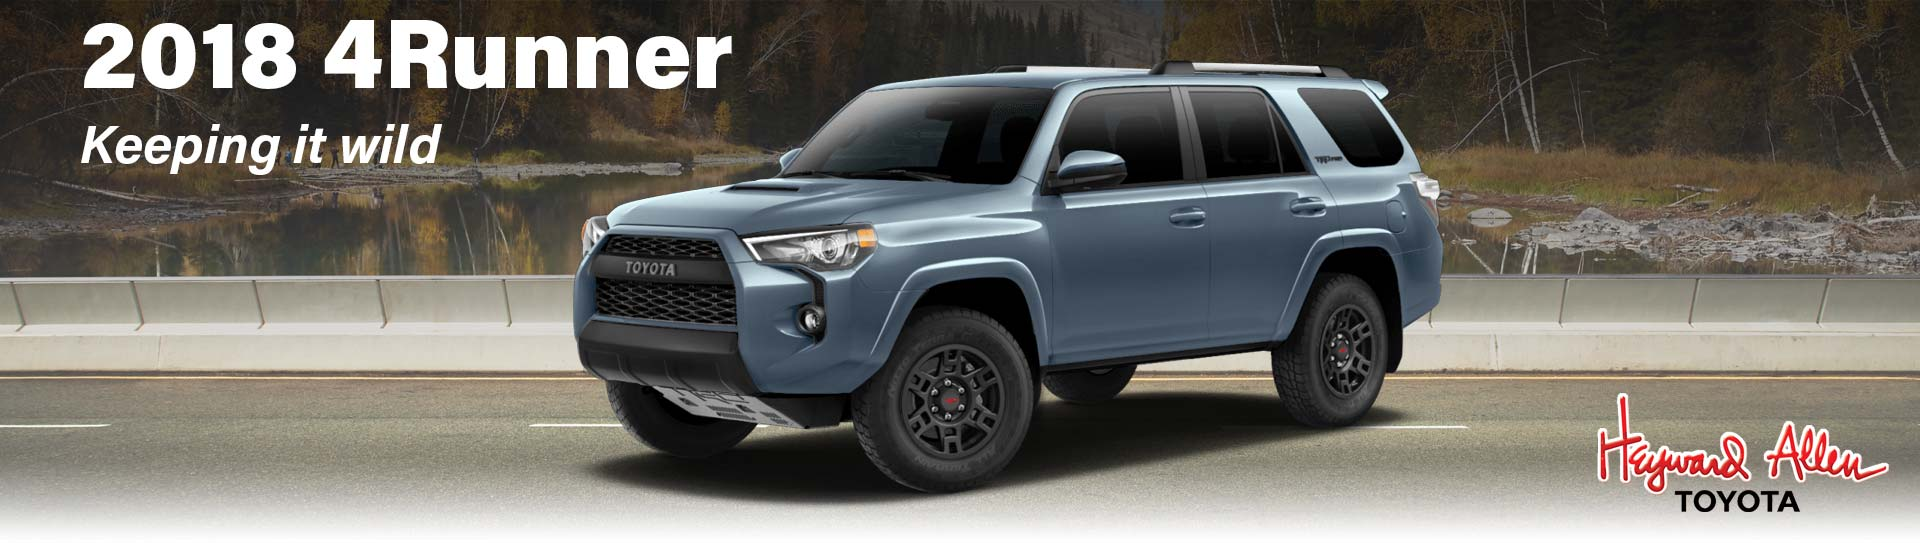 2018 Toyota 4Runner comparison